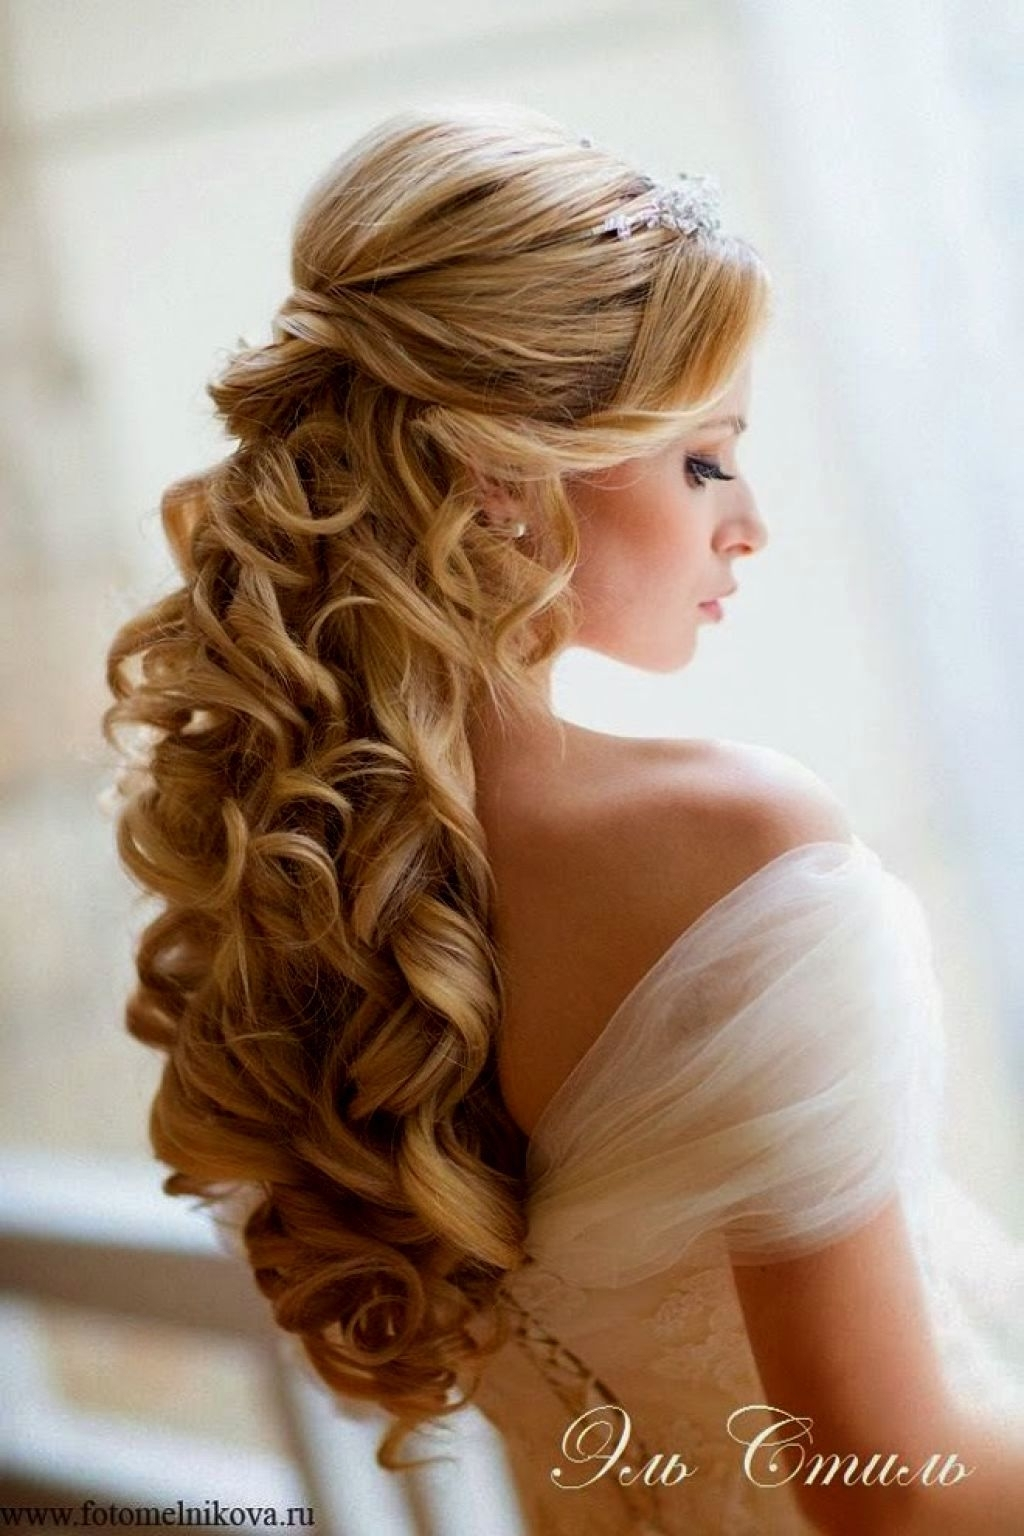 Fashionable Wedding Hairstyles For Long Hair Half Up With Veil Throughout Wedding Hair Half Up Half Down With Veil Wedding Hair Half Up Half (View 7 of 15)